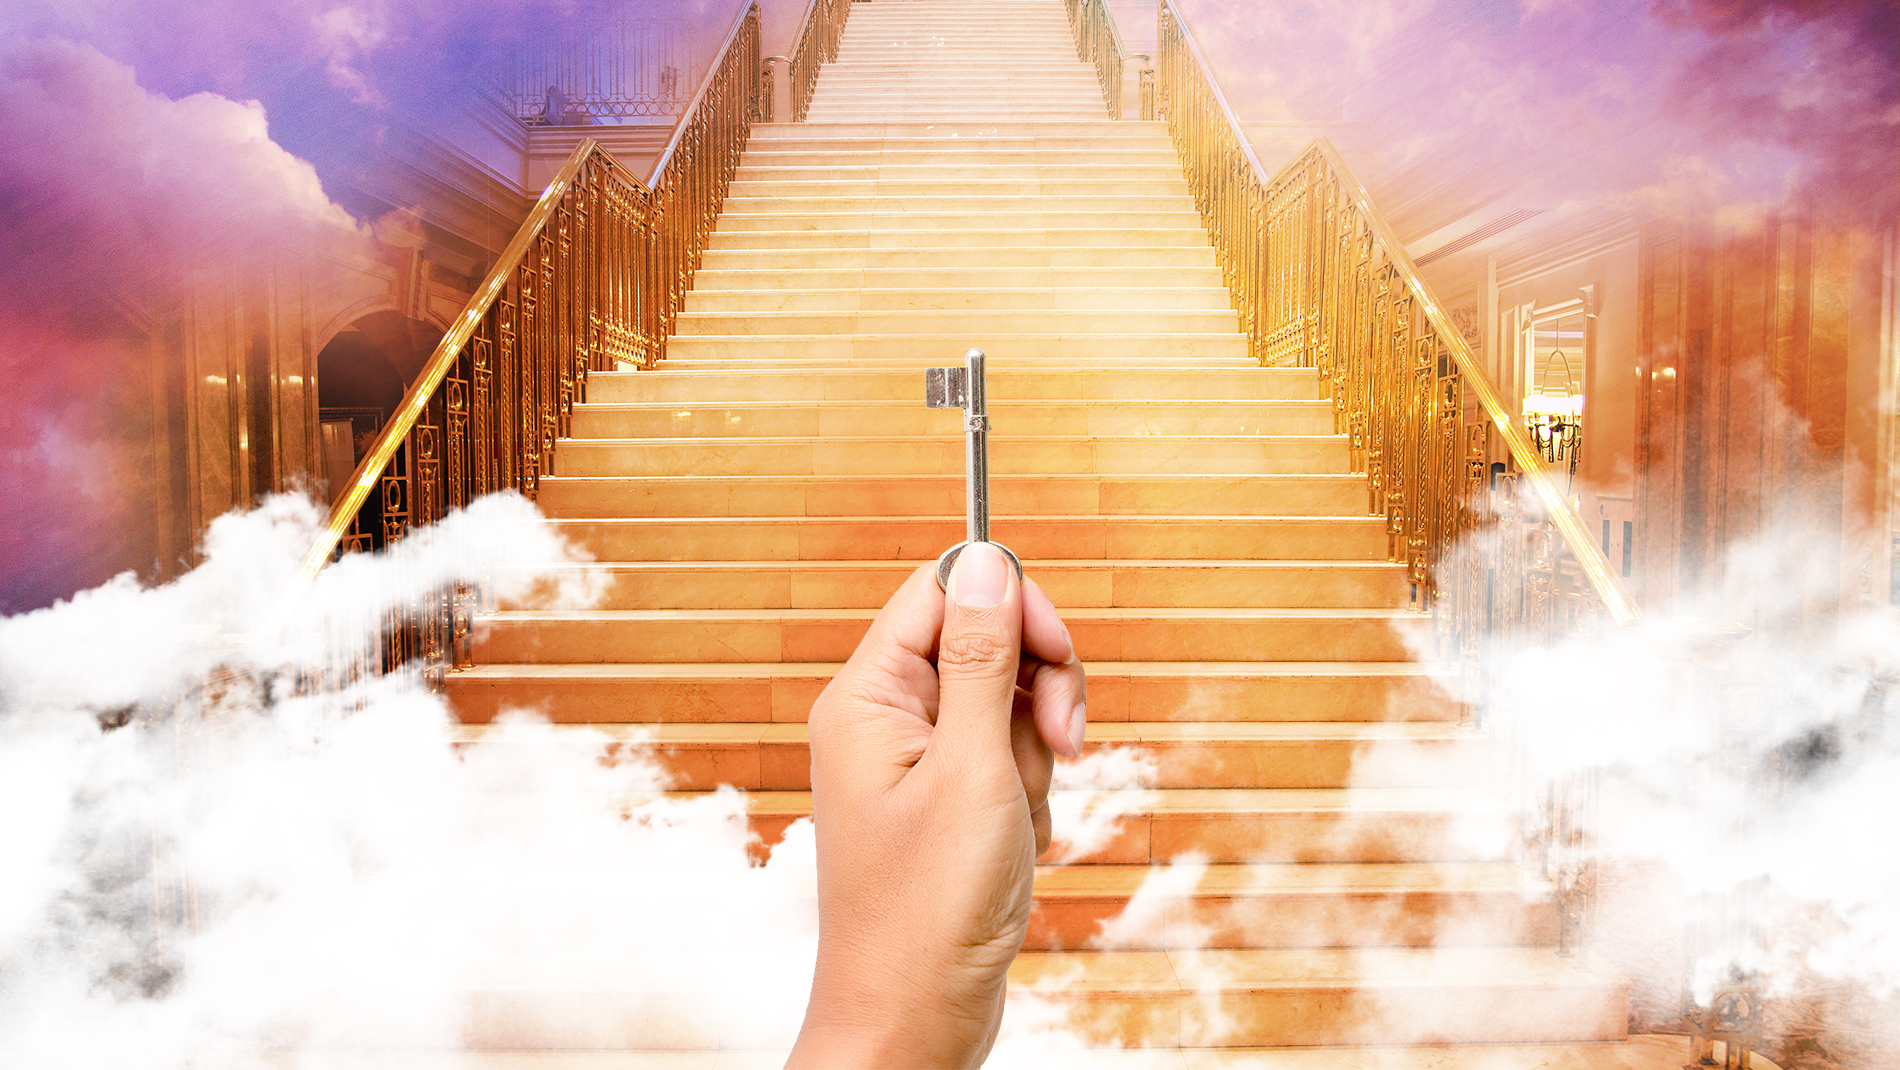 Hand holding a key in front of a staircase